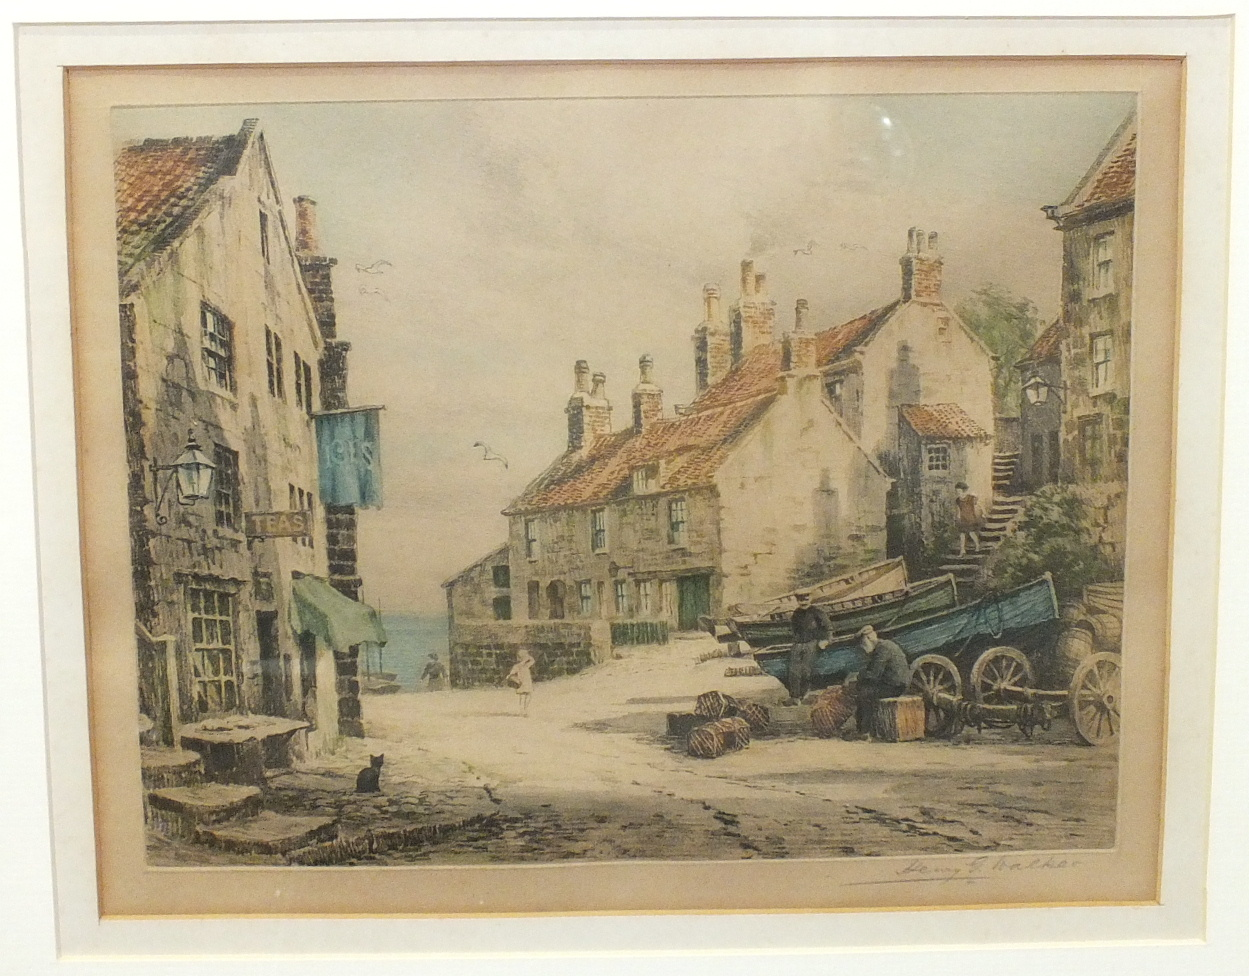 Lot 31 - After Henry G Walker, 'Coastal scene', probably Mousehole, a coloured etching signed in pencil, 27.5